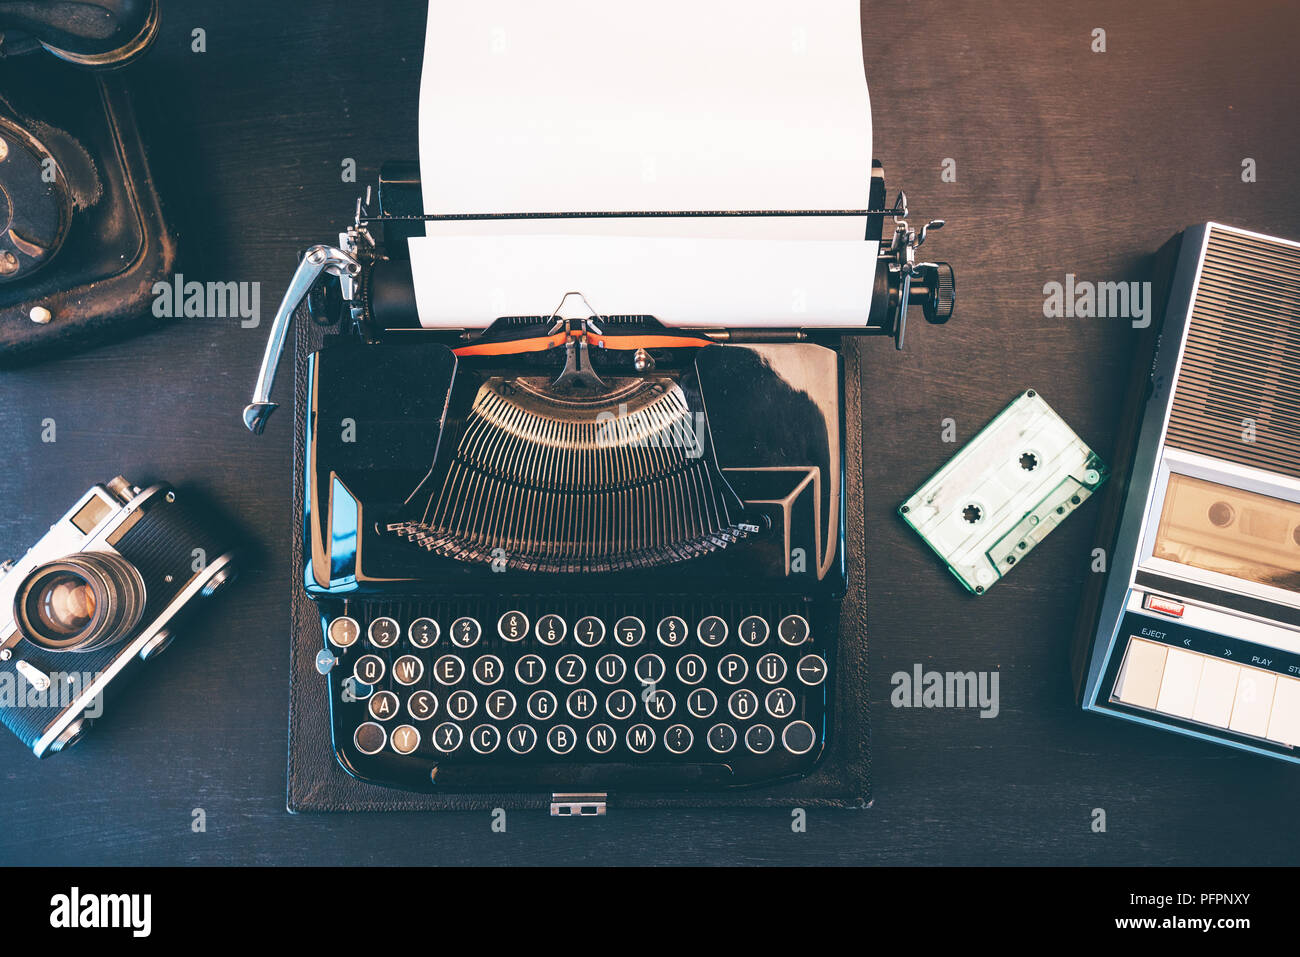 Top view of vintage journalist workspace with telephone, typewriter and audio cassette tape player - Stock Image